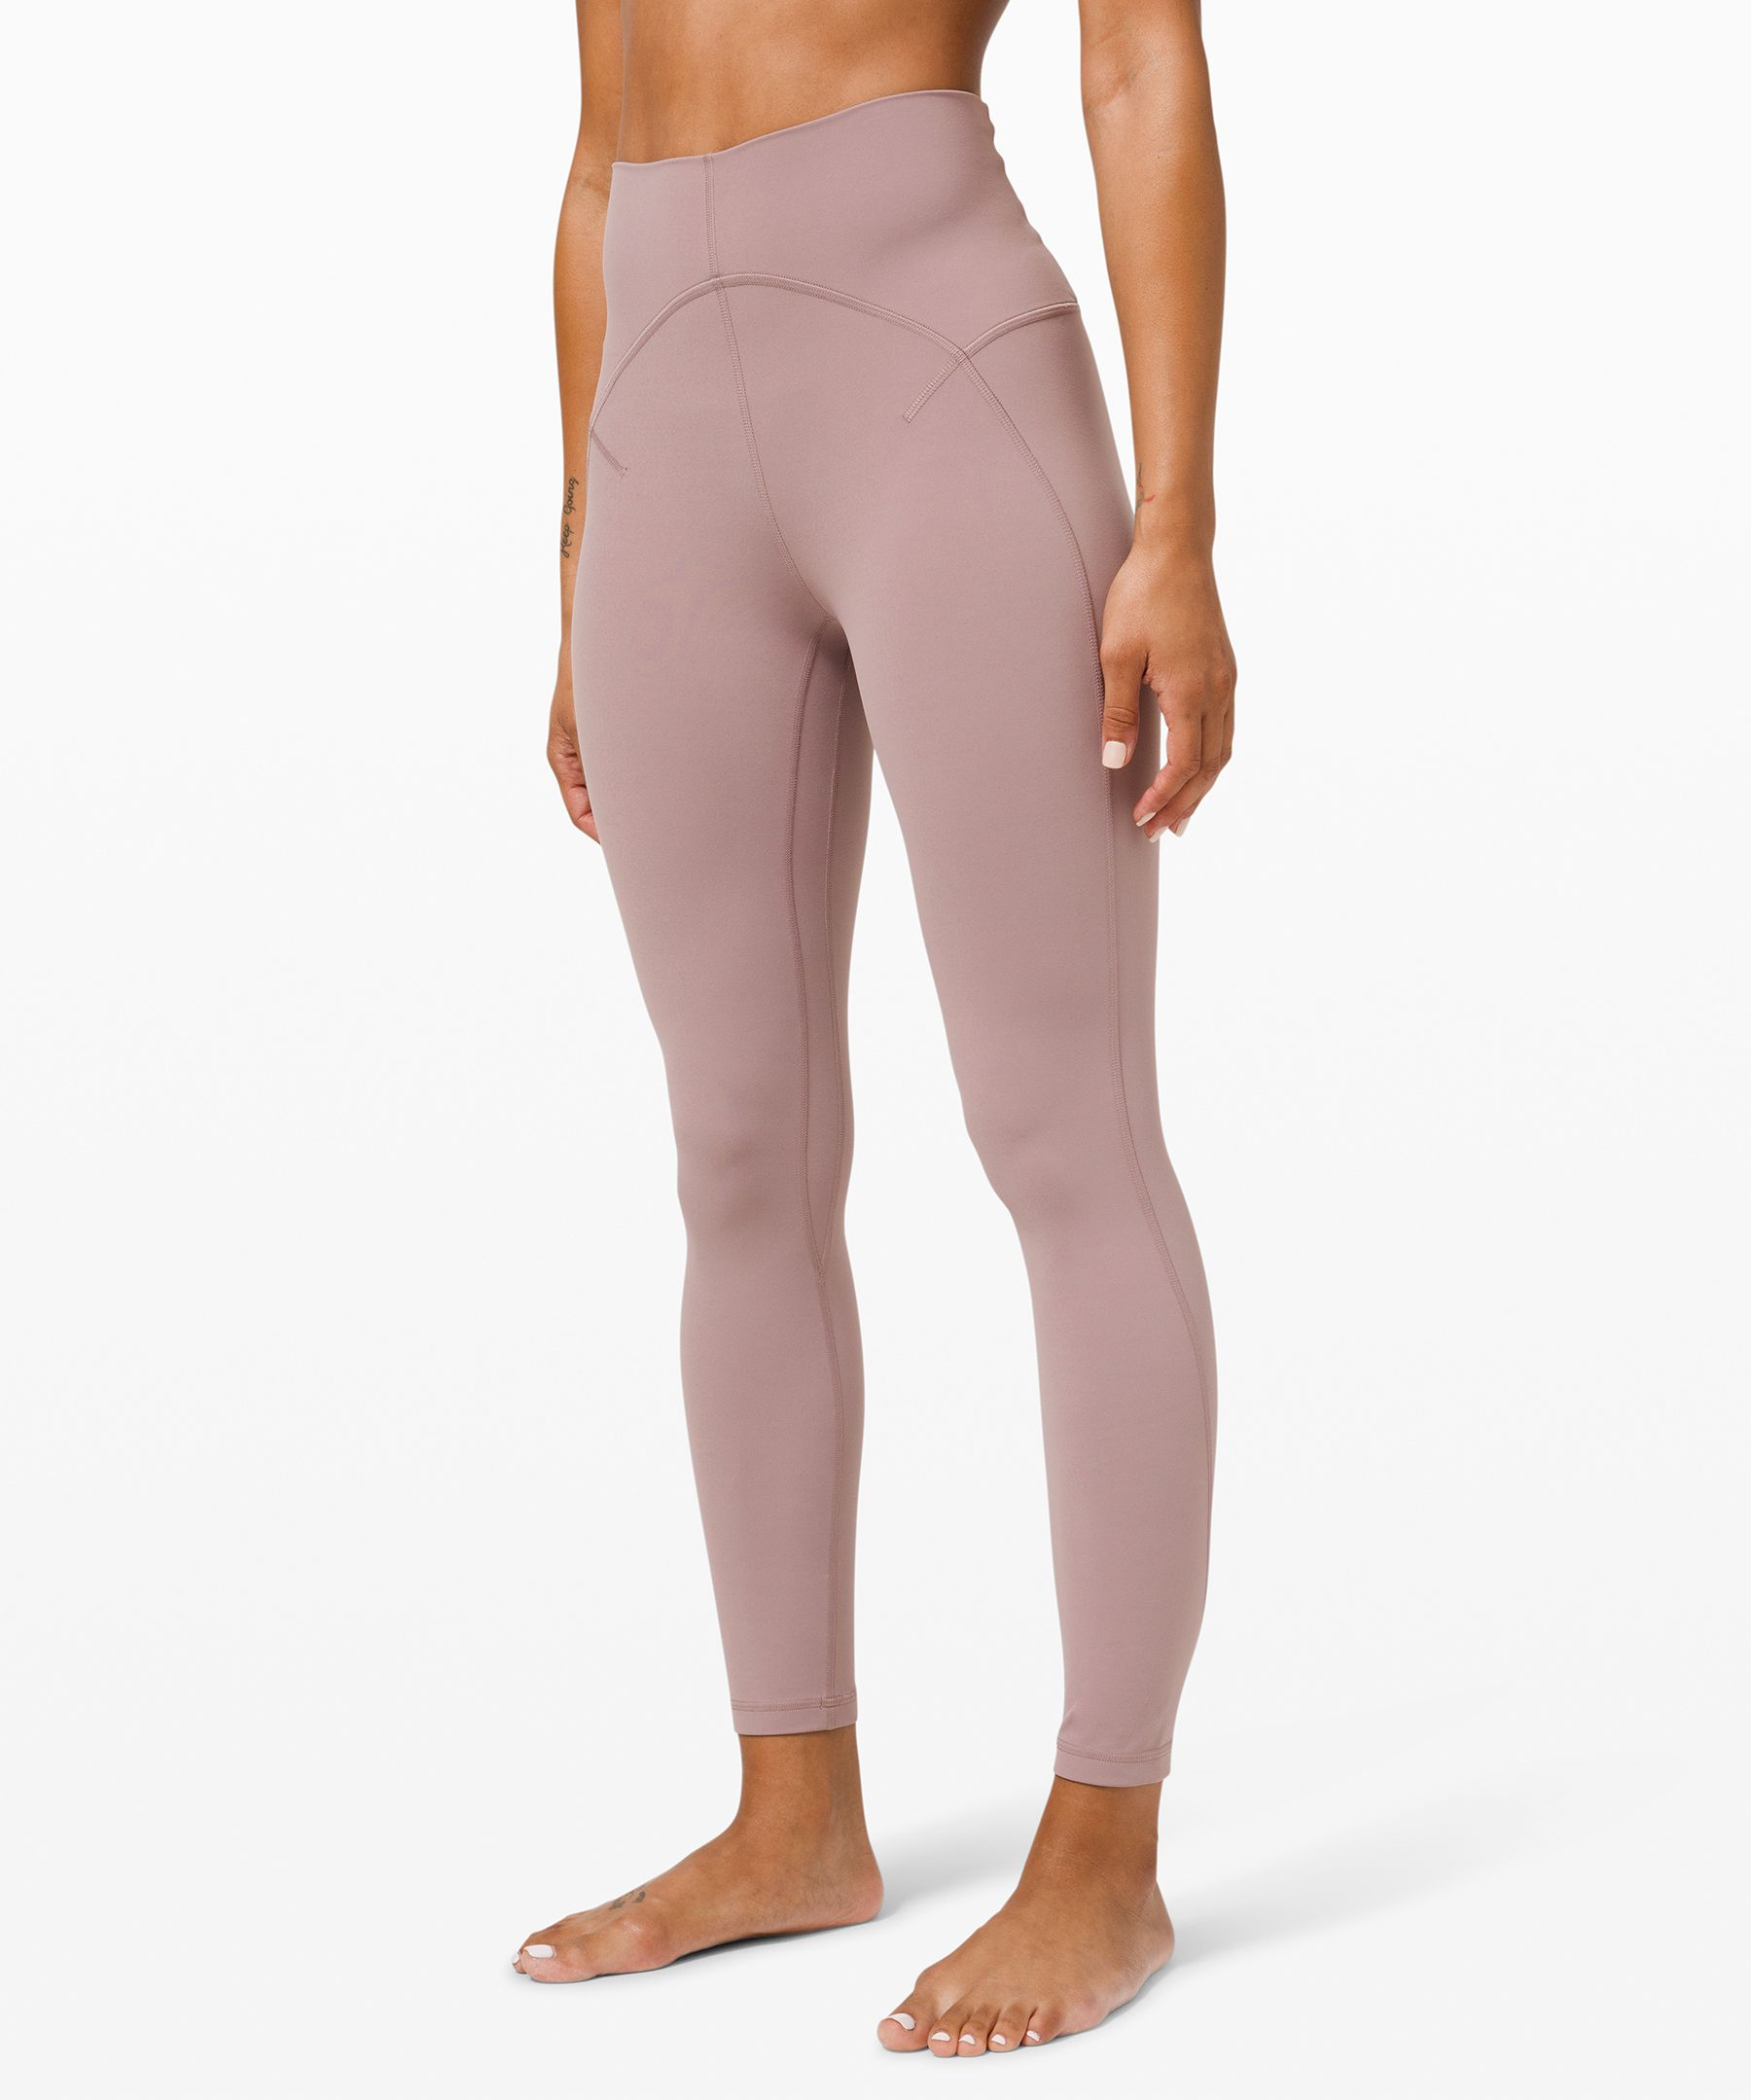 Feel limitless. Powered by our Nulu™ fabric, these buttery-soft tights will have you bending and stretching with ease.